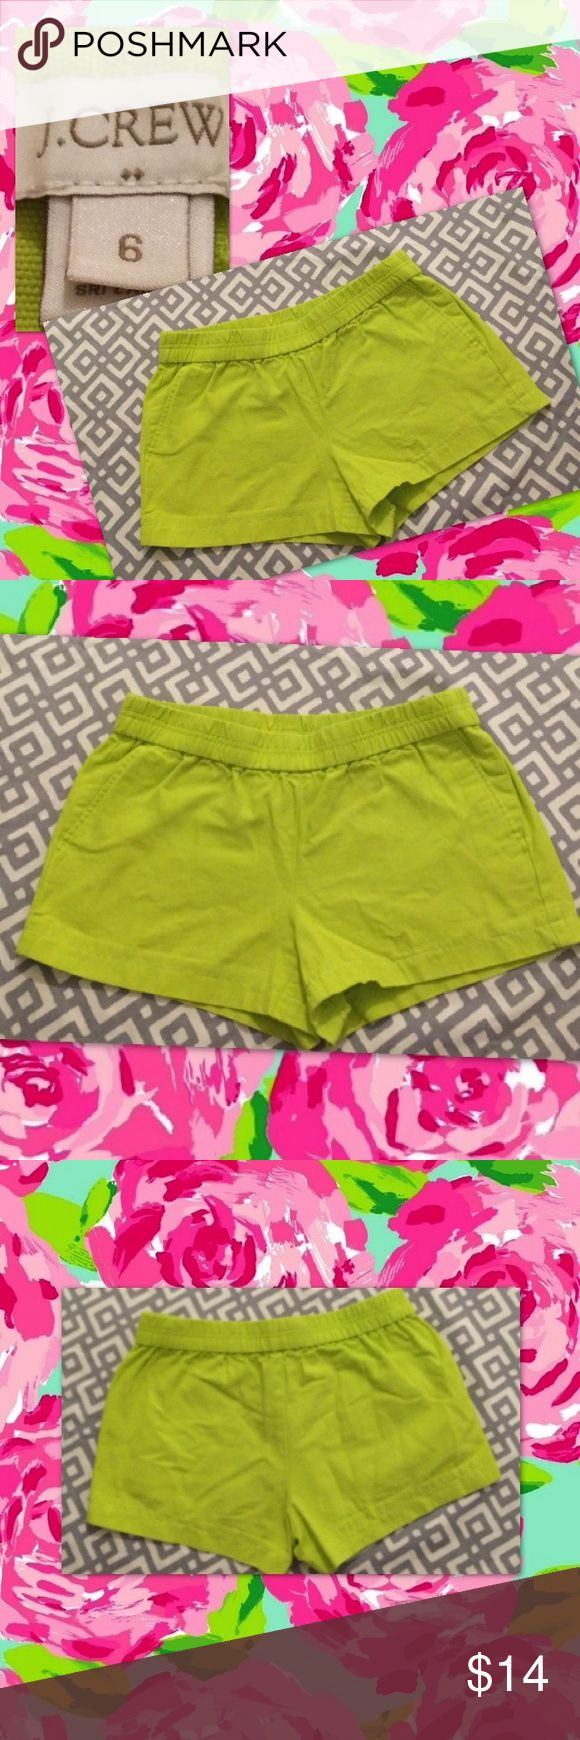 J. Crew, 6 neon green shorts w pockets Neon green shorts w/ pockets and stretch waistband J. Crew Shorts